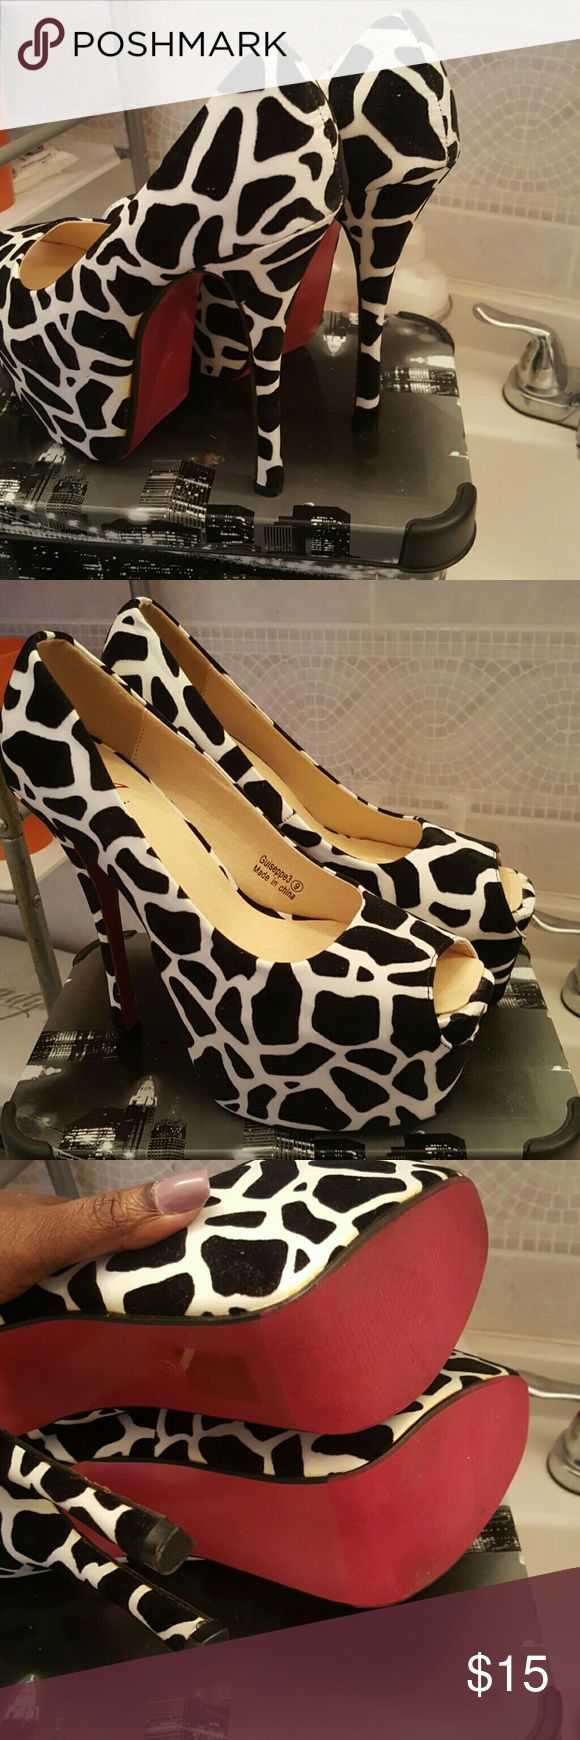 Black and white high heel shoes Cute black and white high heel shoes with pink bottom Shoes Heels